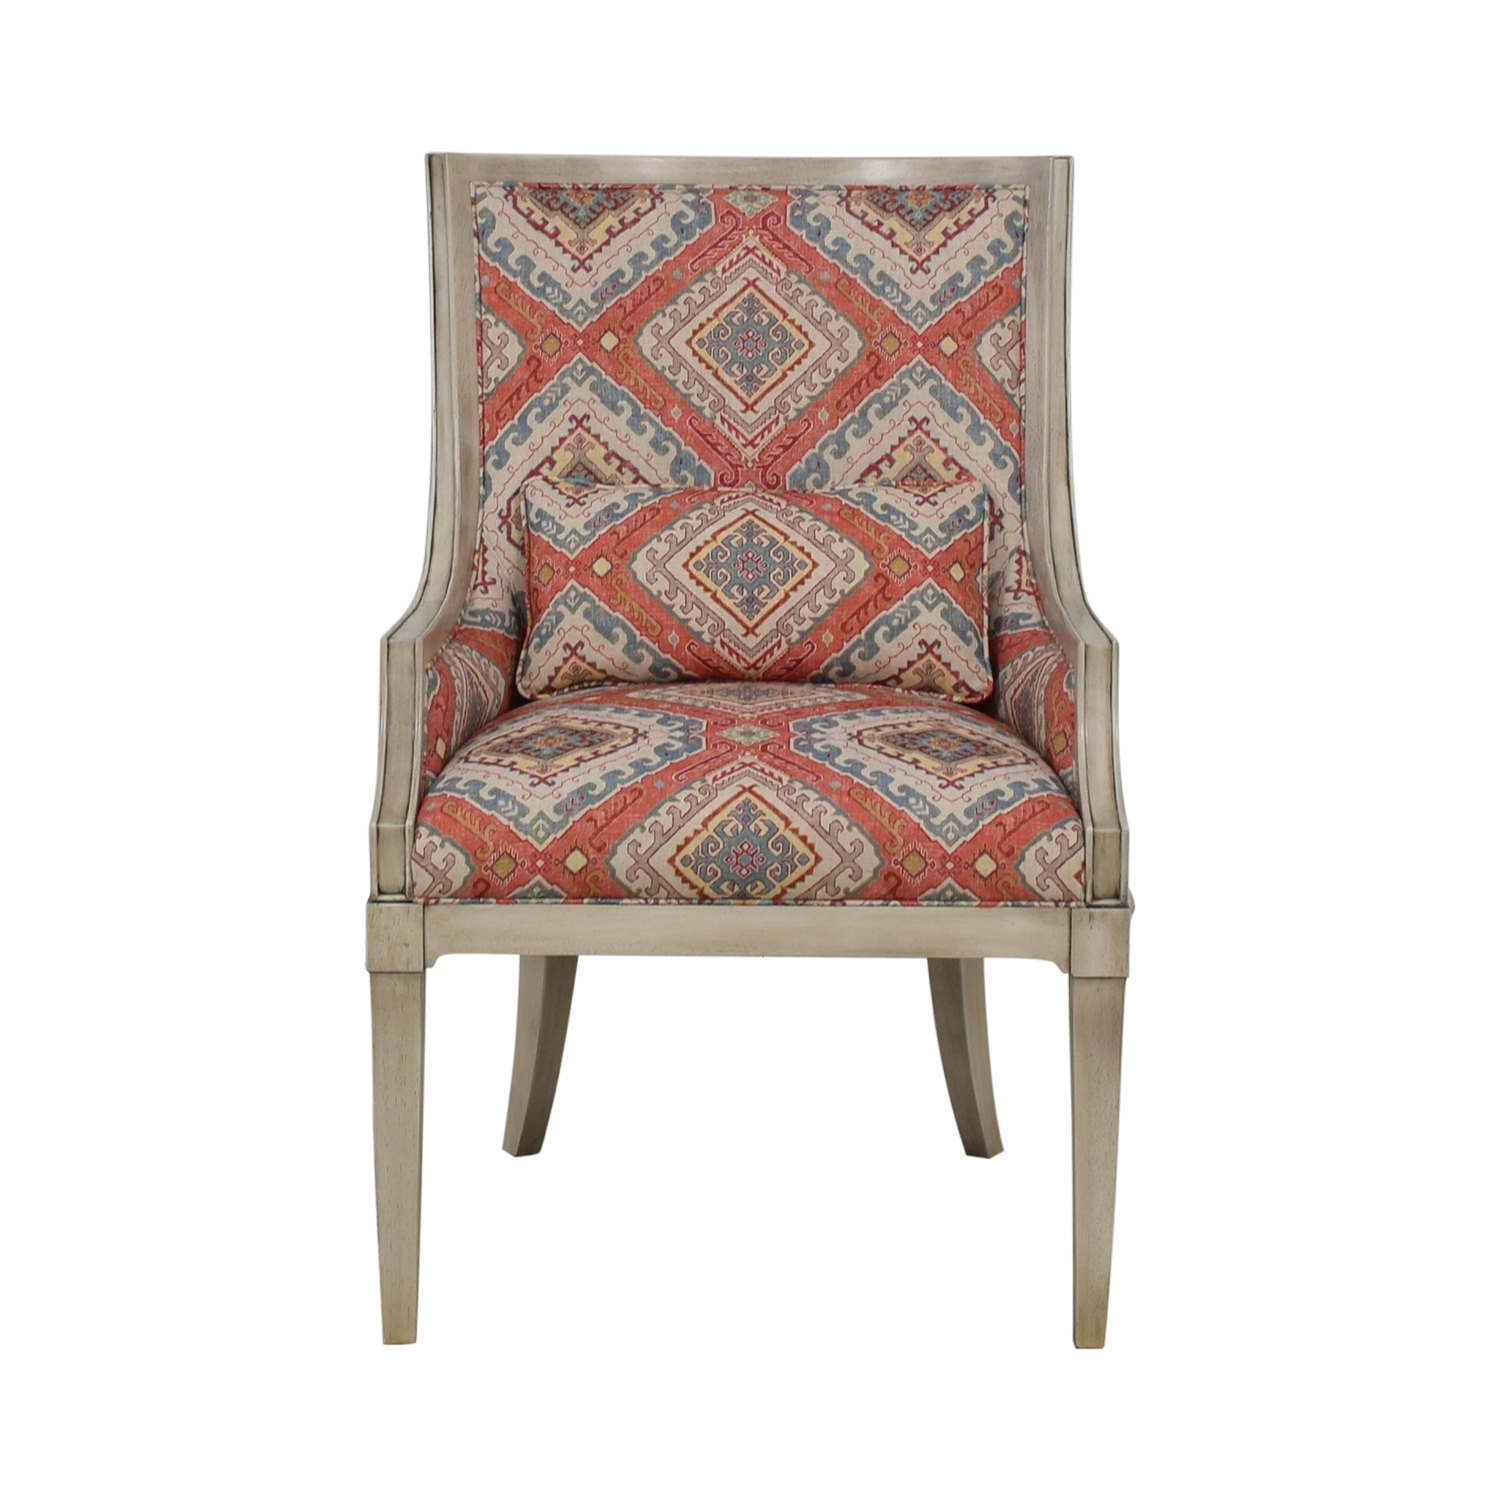 Lexington Furniture Lexington Furniture Tommy Bahama Home Arm Chair price